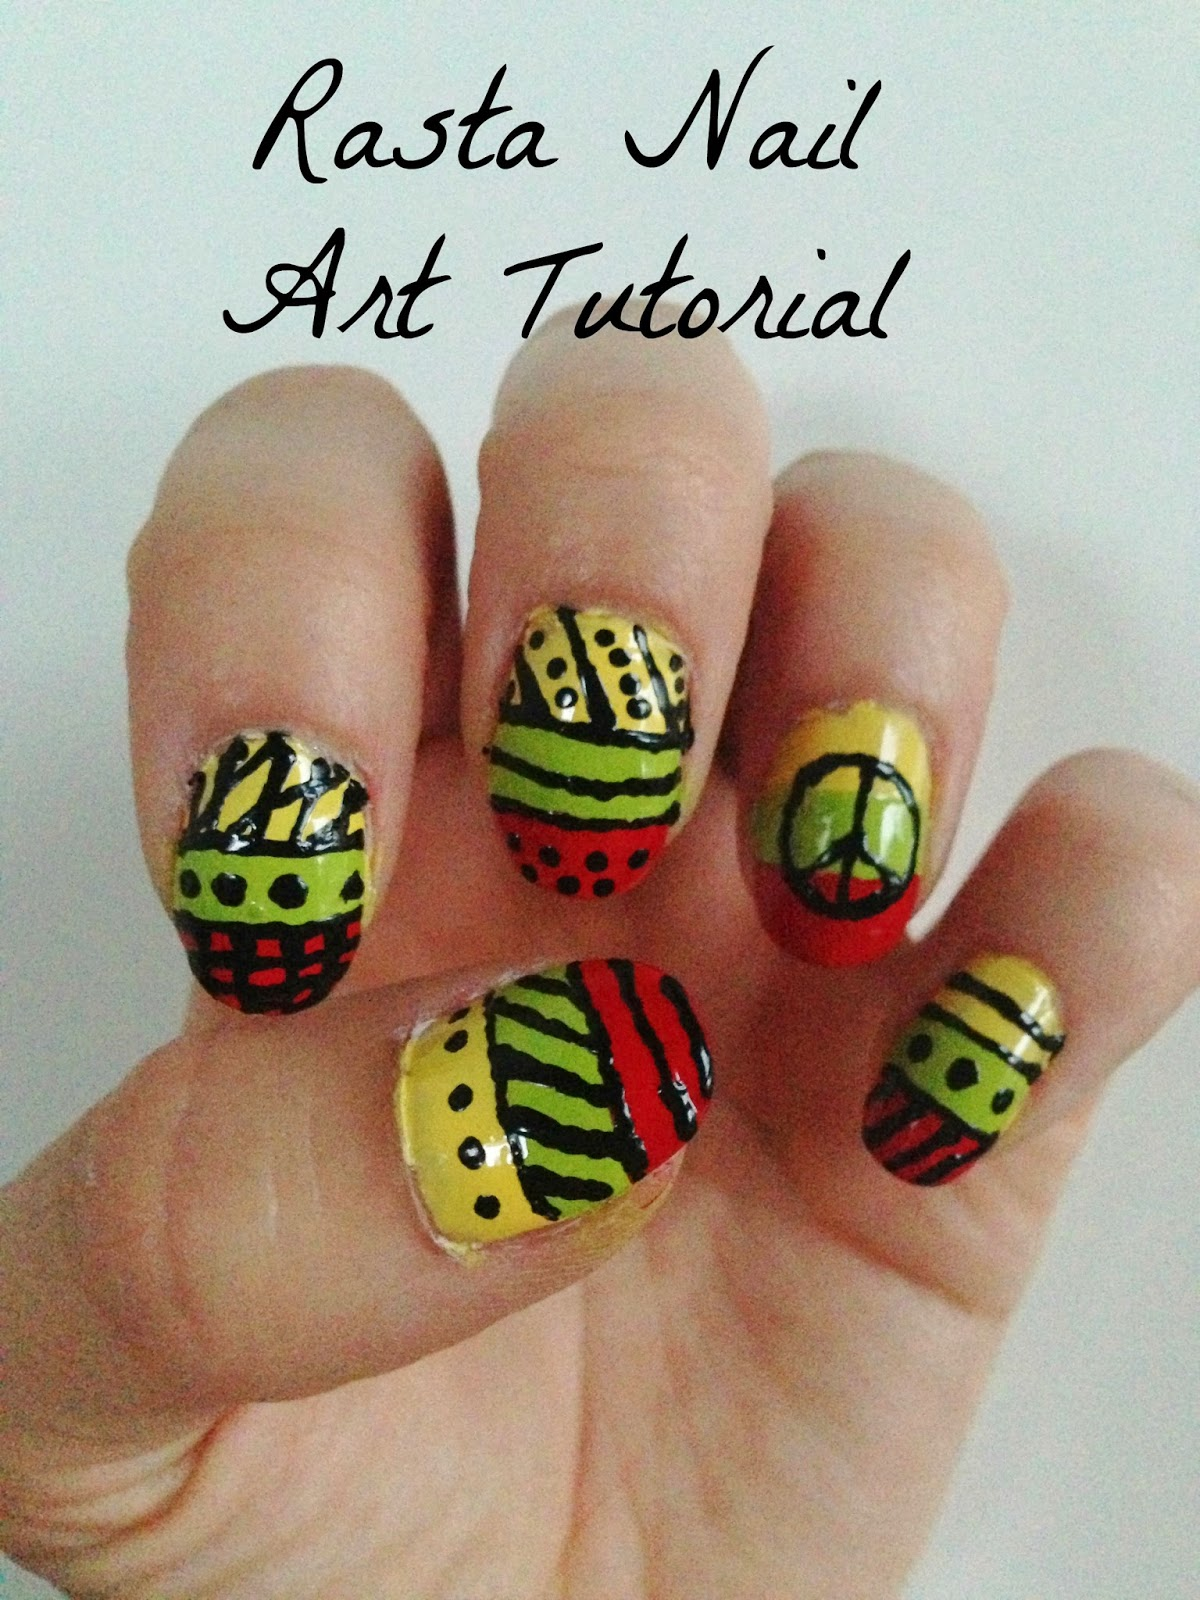 - Rasta Nail Art Tutorial - Jersey Girl, Texan Heart